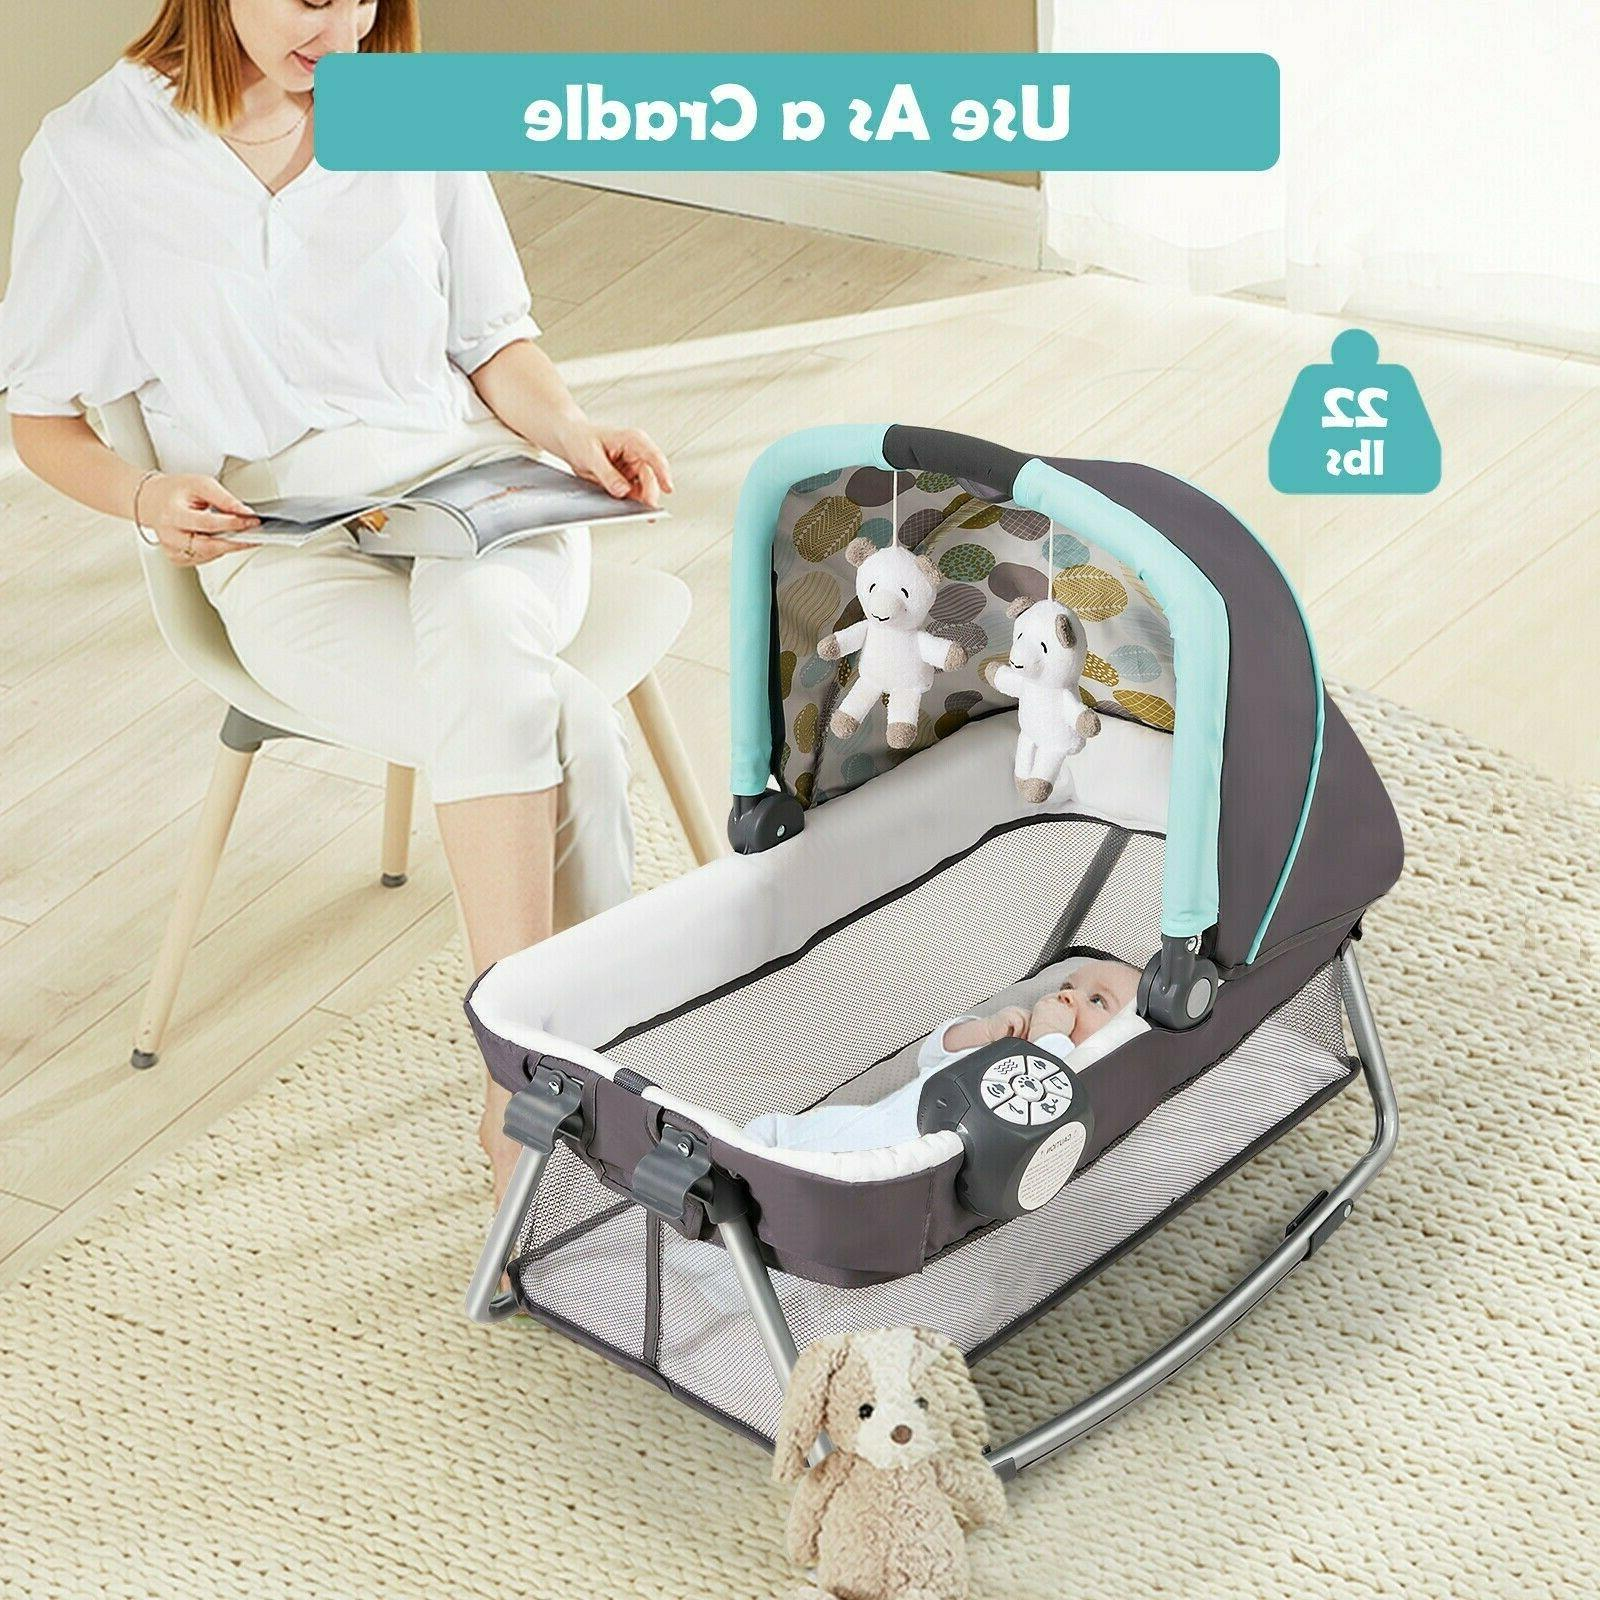 Travel Cot Nursery Playard Play With Bassinet 4in1